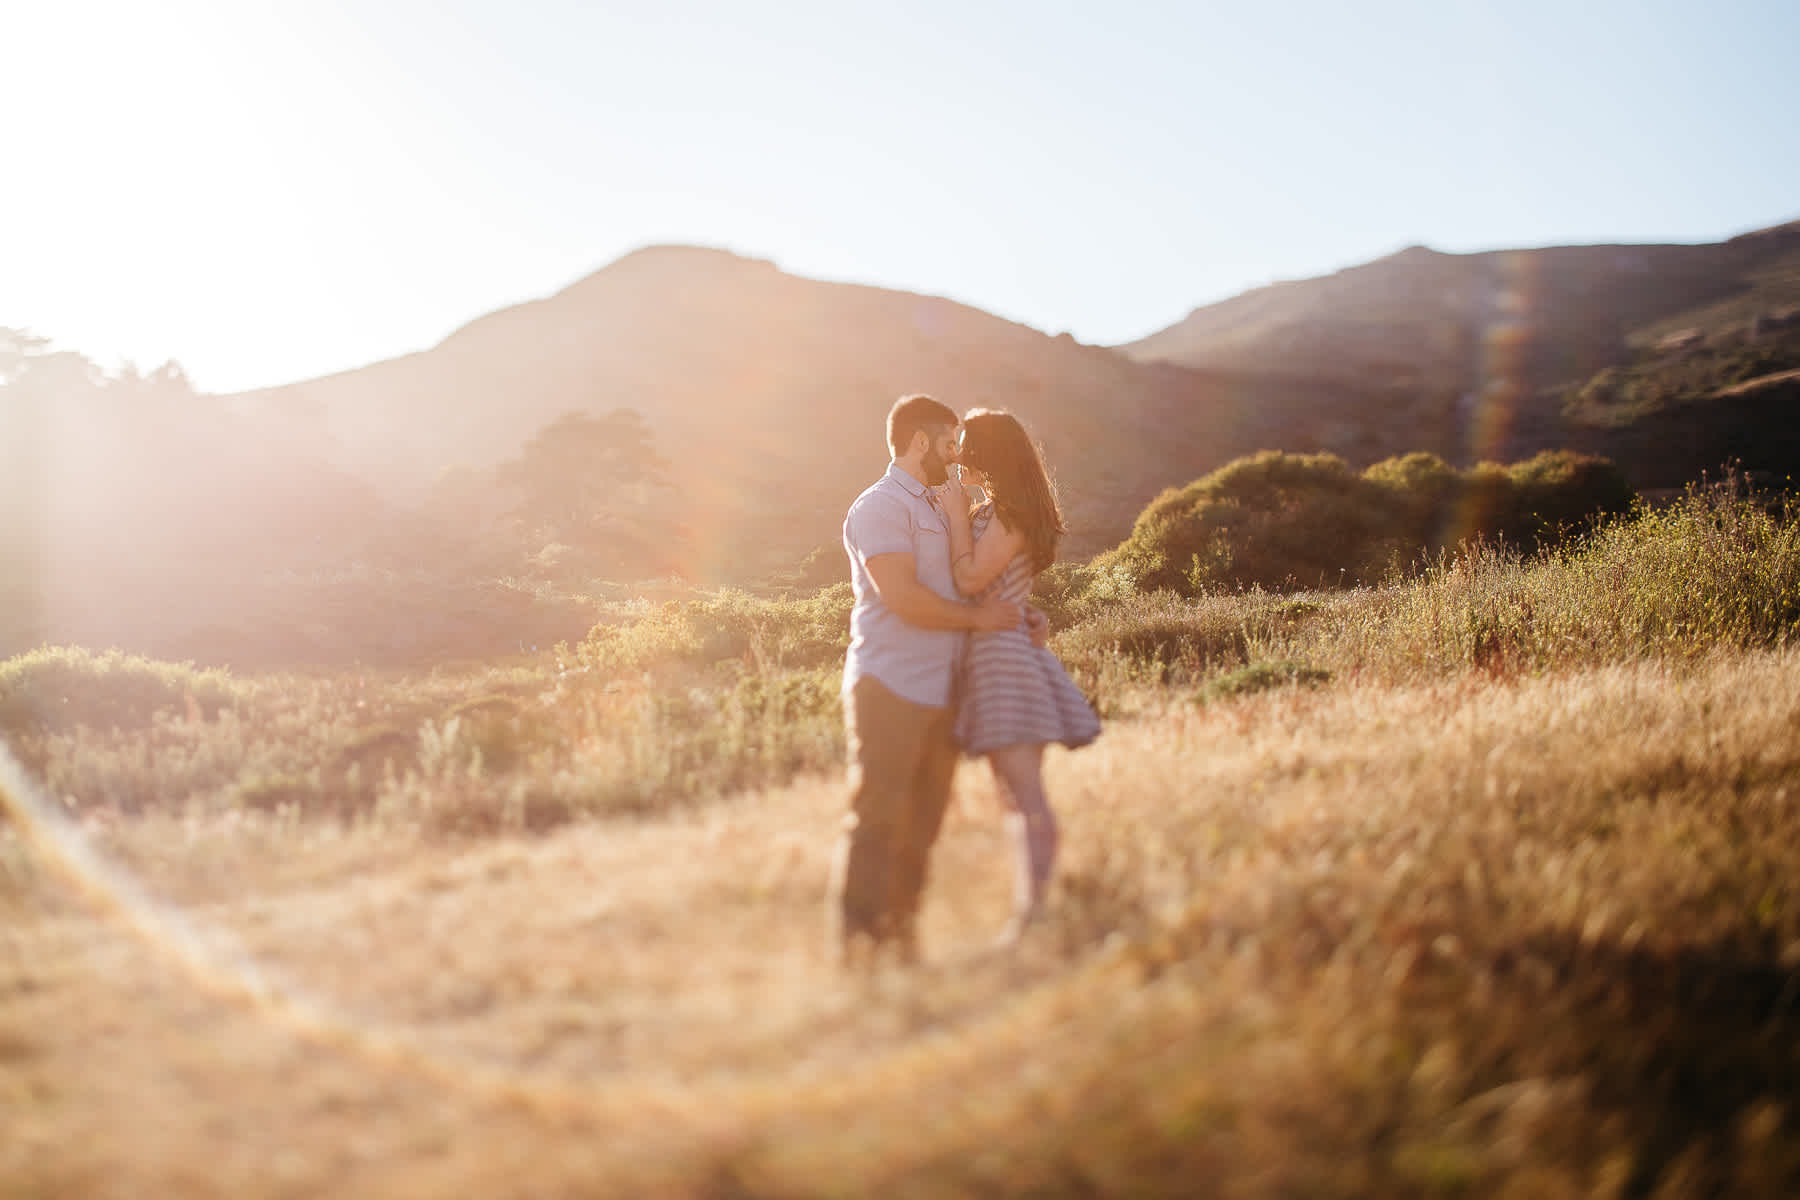 marin-headlands-rodeo-beach-lifestyle-laughter-engagement-session-24